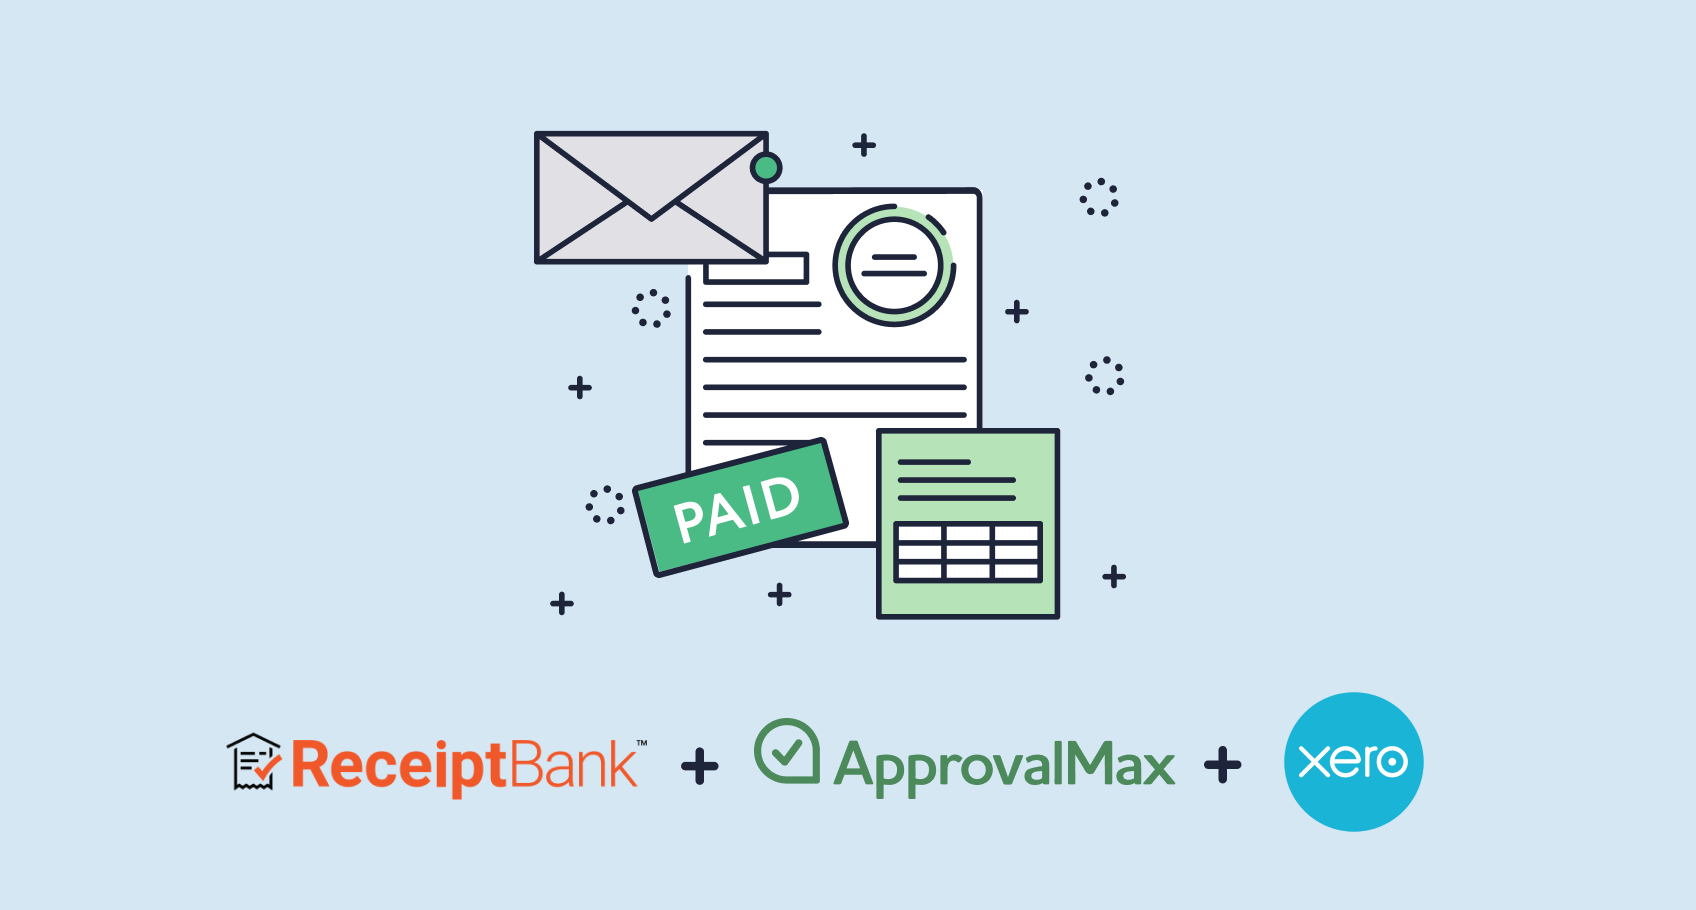 Blog_ApprovalMax+ReceiptBank+Xero_Paid bills